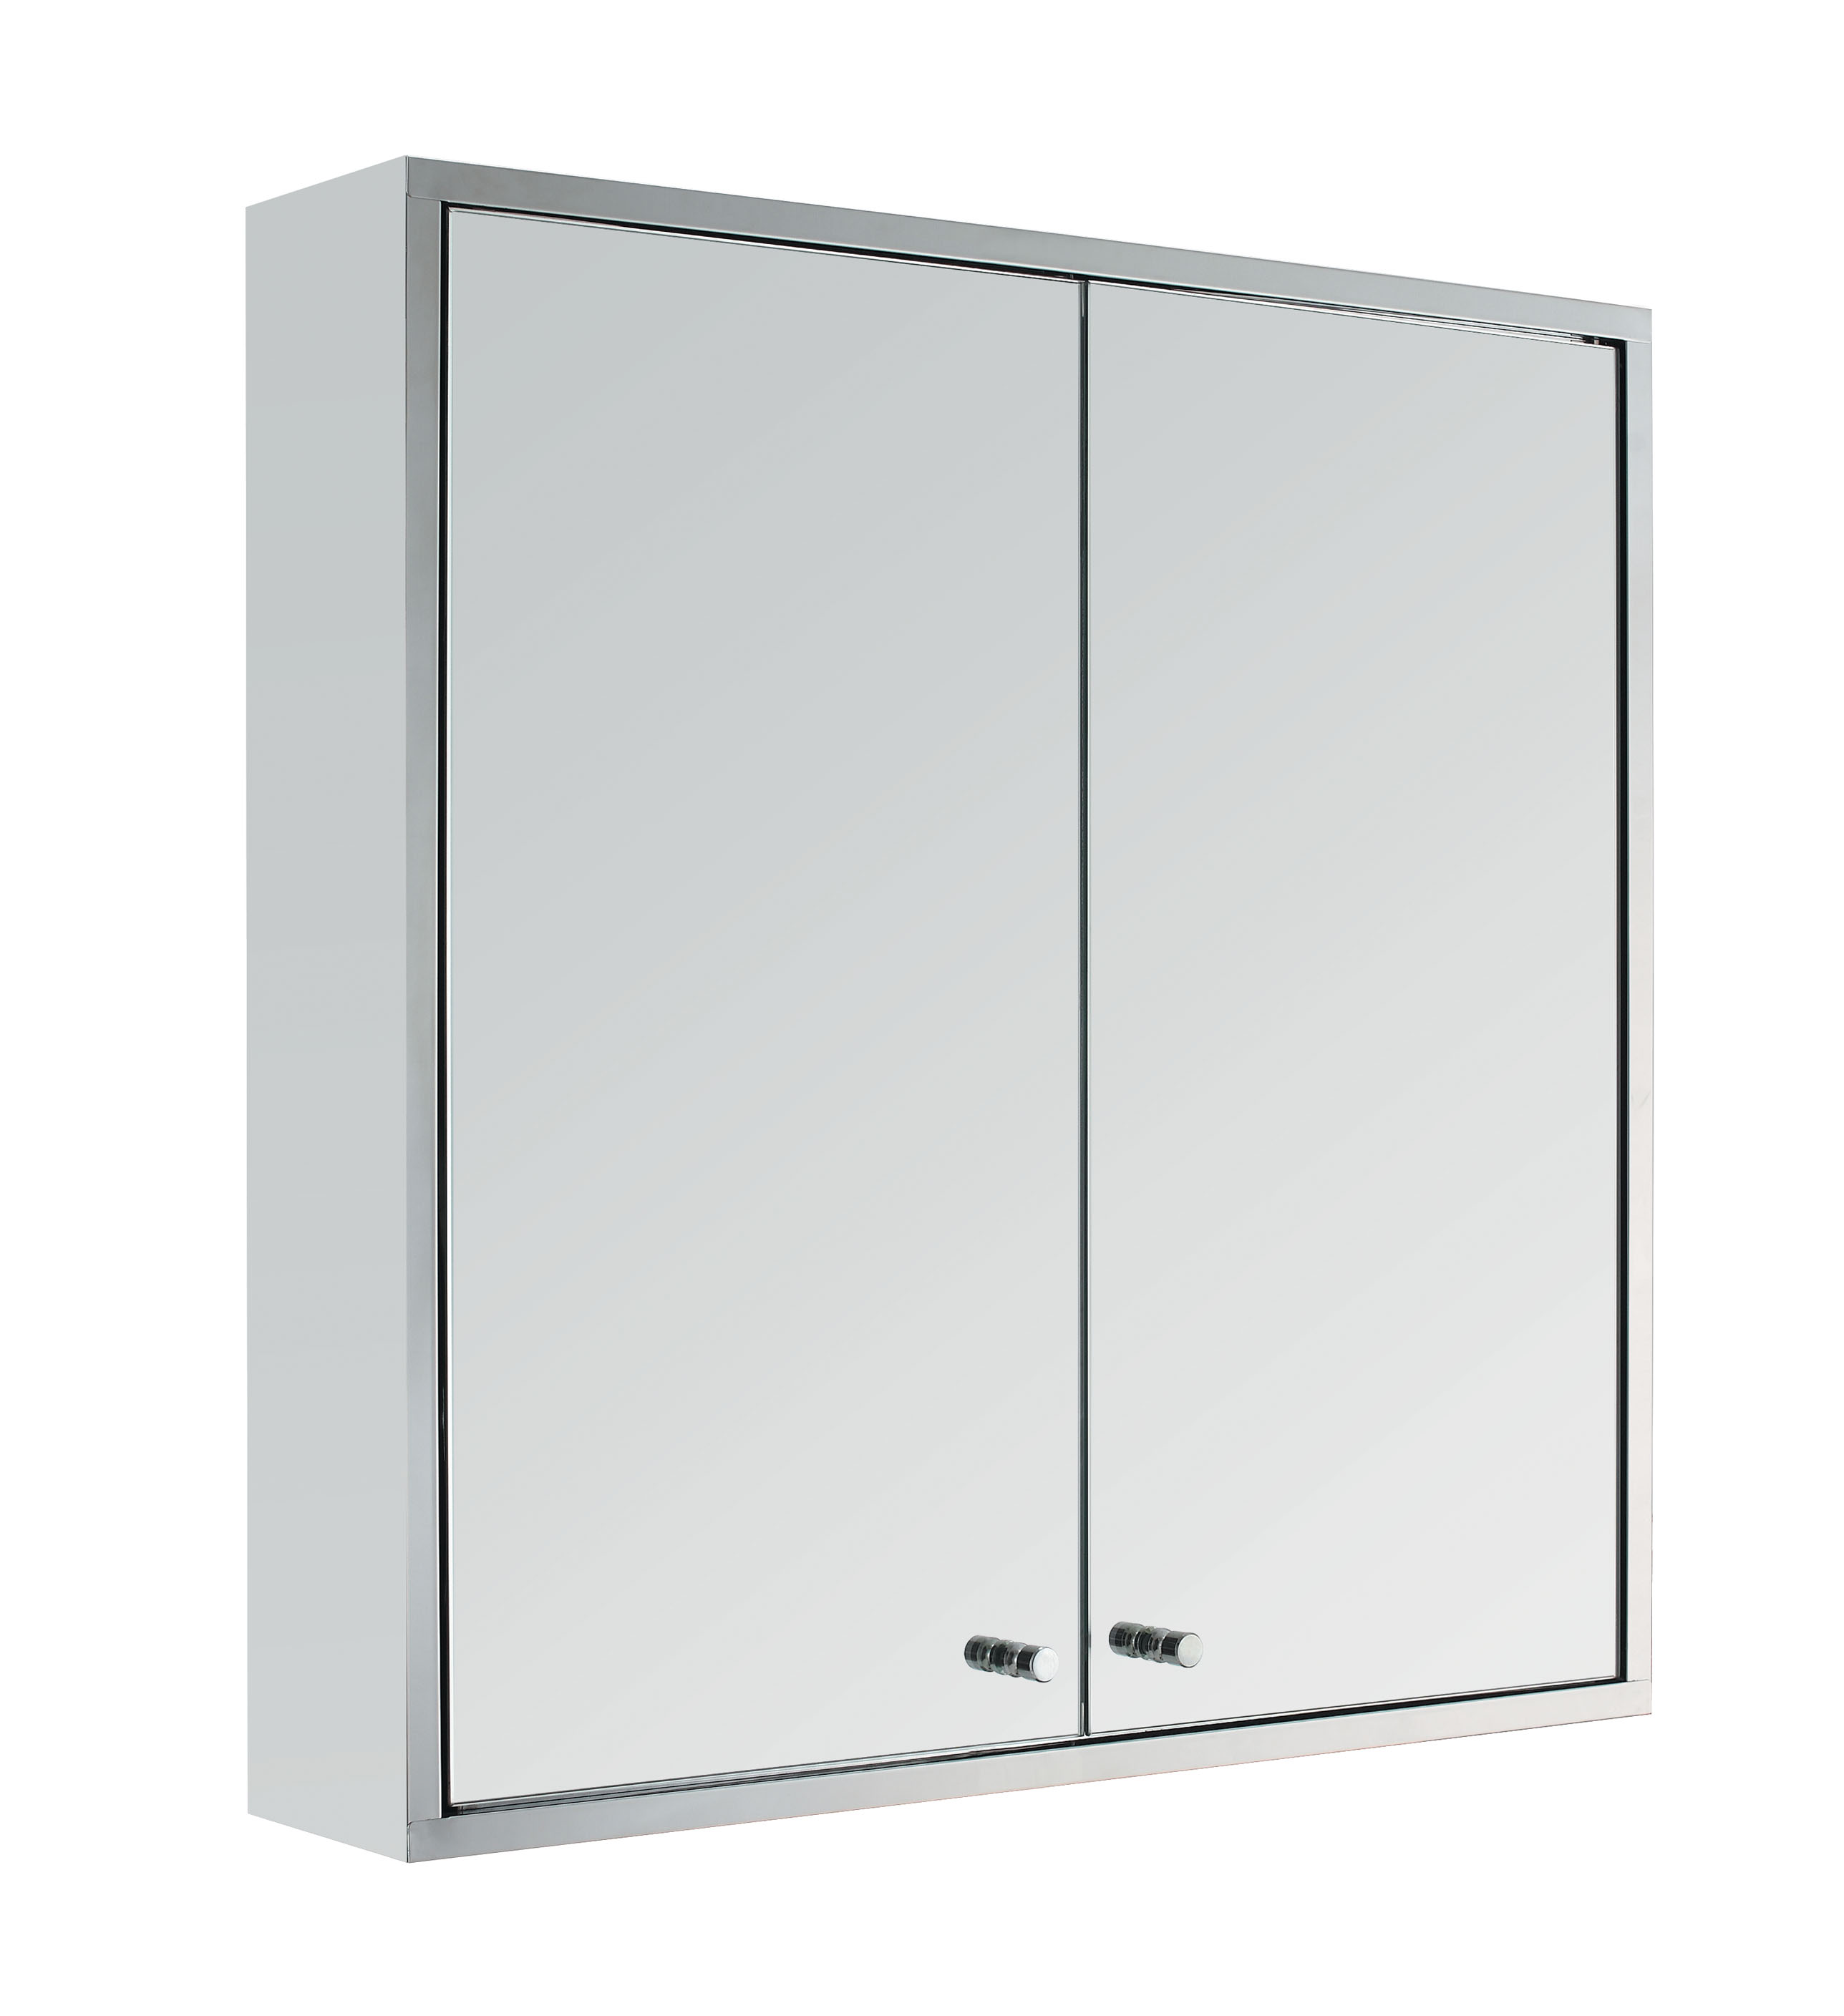 Stainless steel double door wall mount bathroom cabinet storage cupboard mirror ebay Bathroom mirror cabinet design